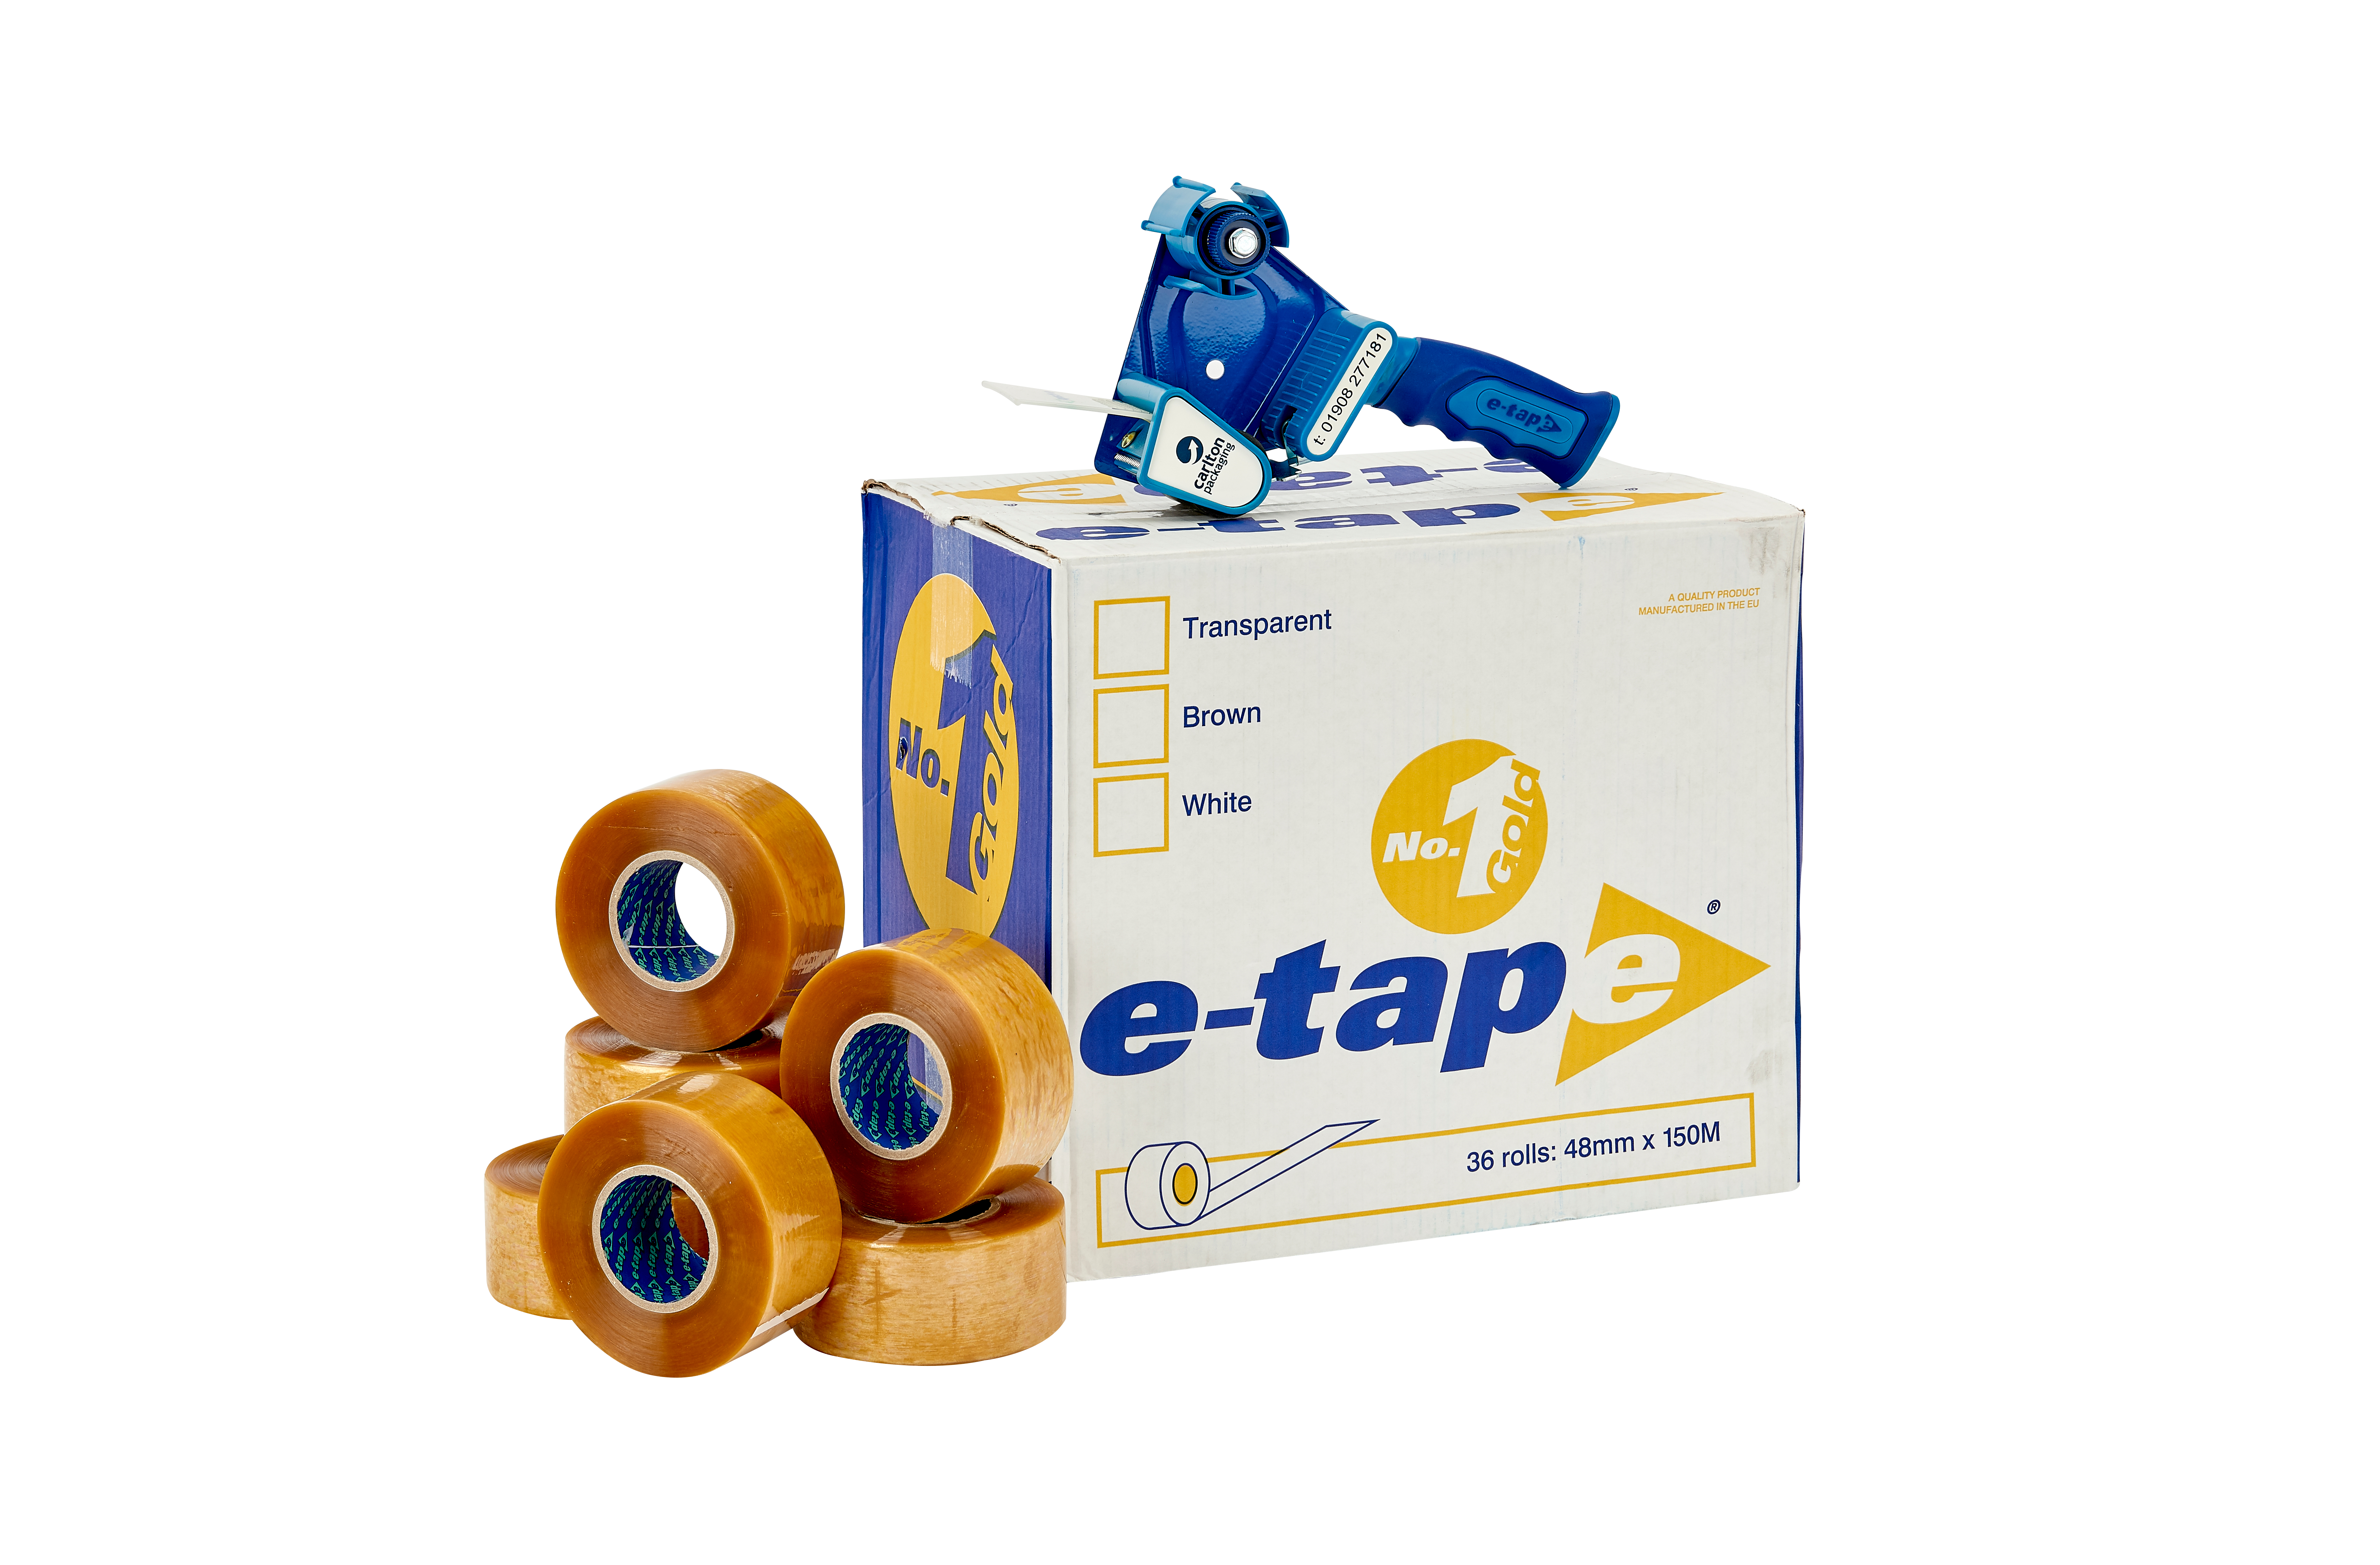 e-tape™ 3 Plus - 70mm x 100m clear